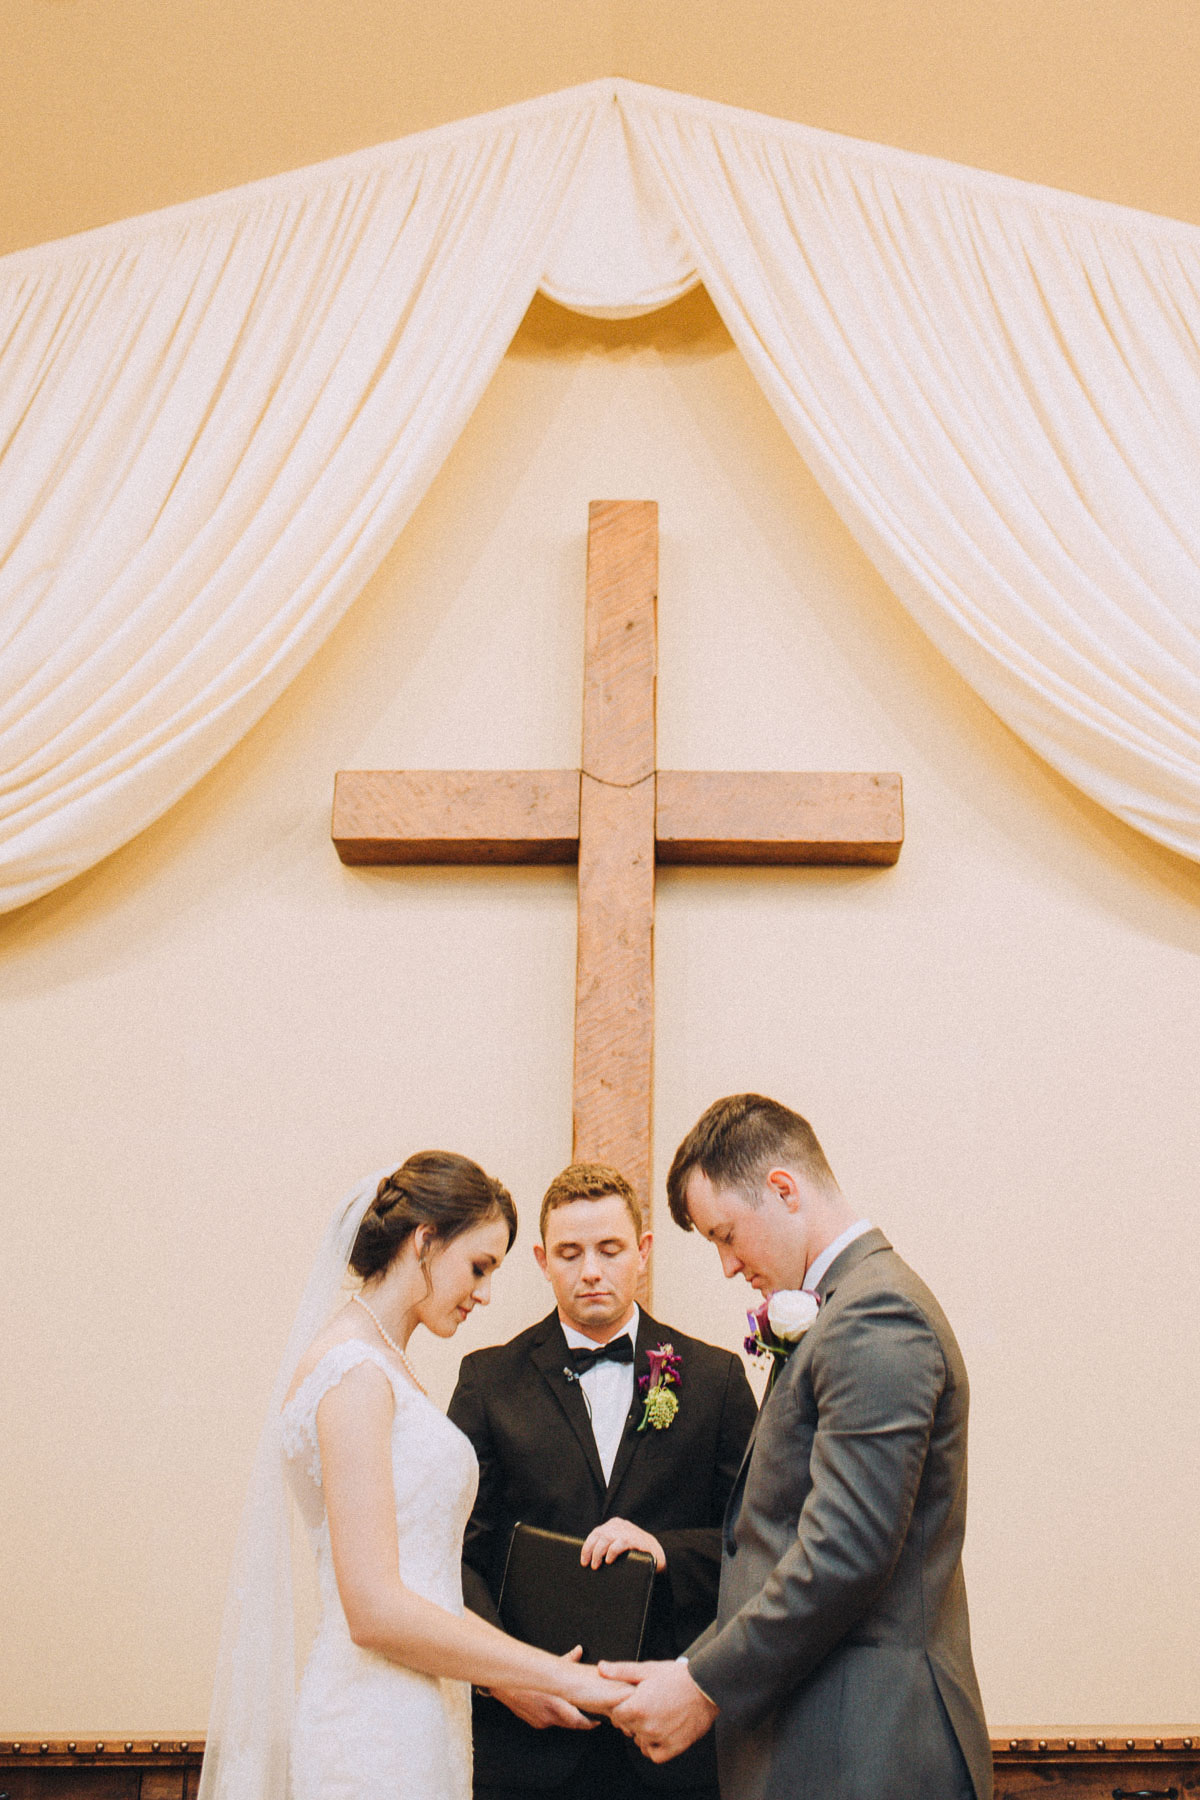 Bride and groom bowed in prayer during their wedding ceremony at Wedgewood Black Forest.